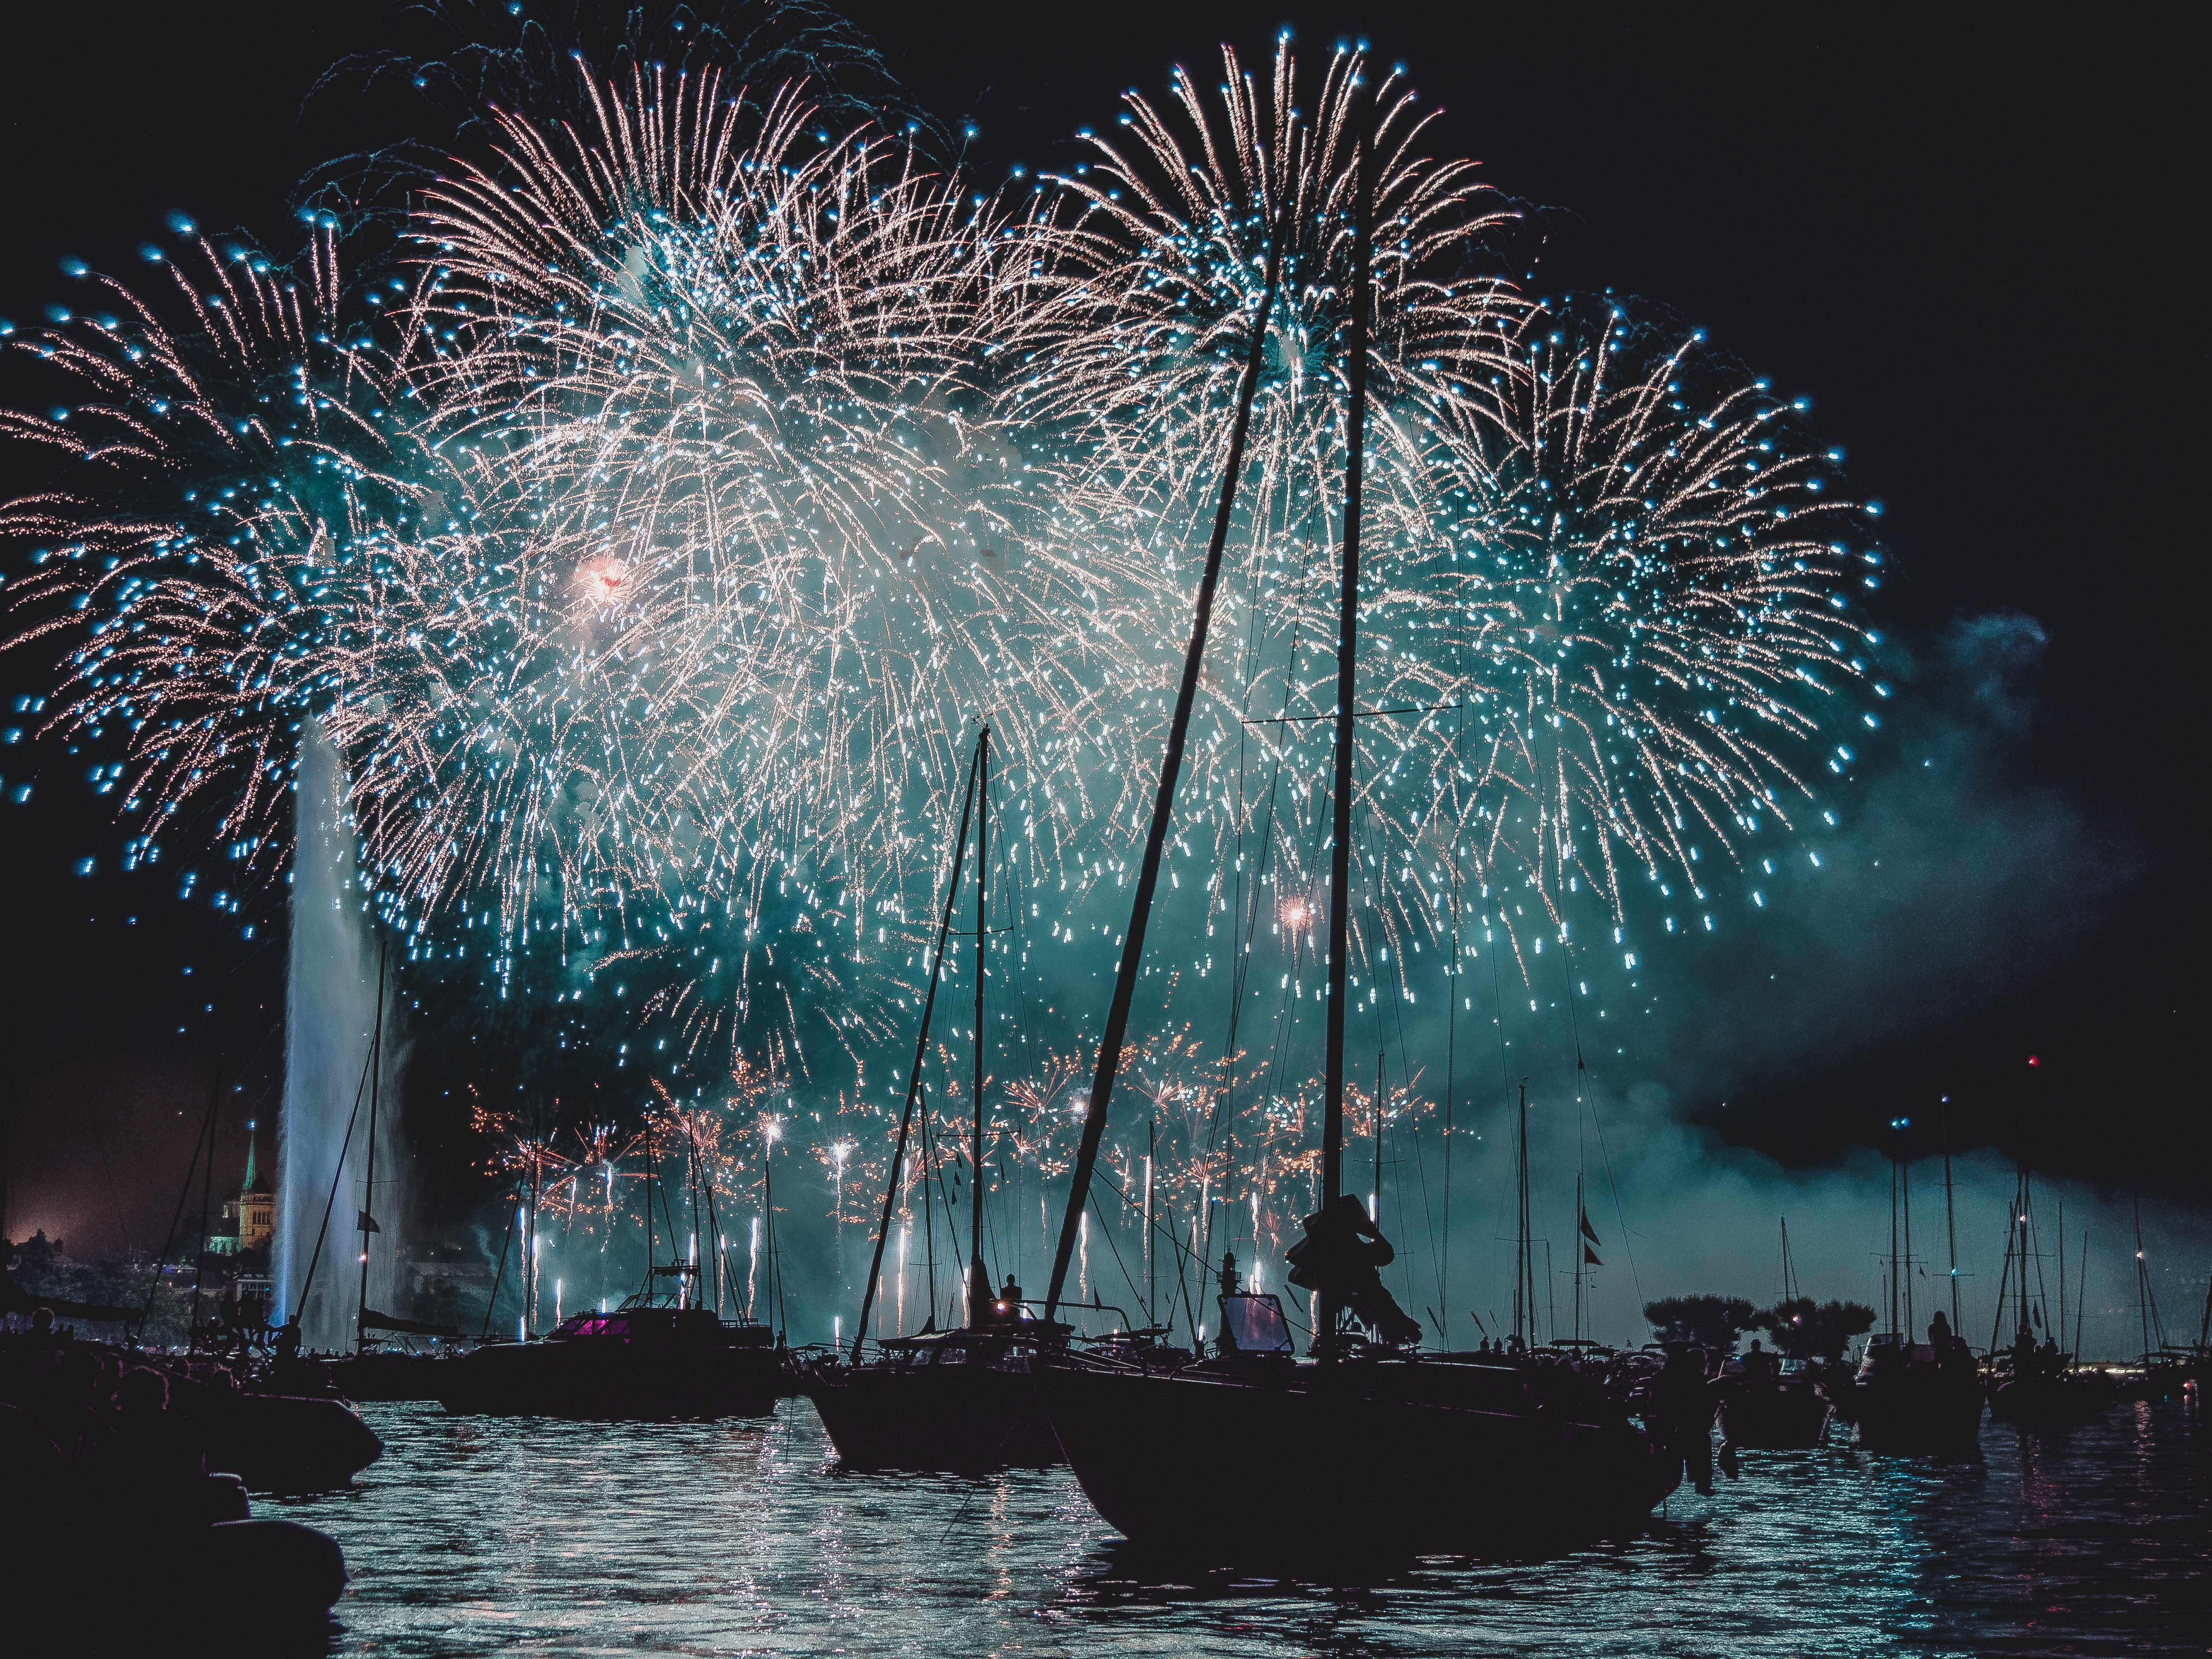 sail boats on water with firework displays